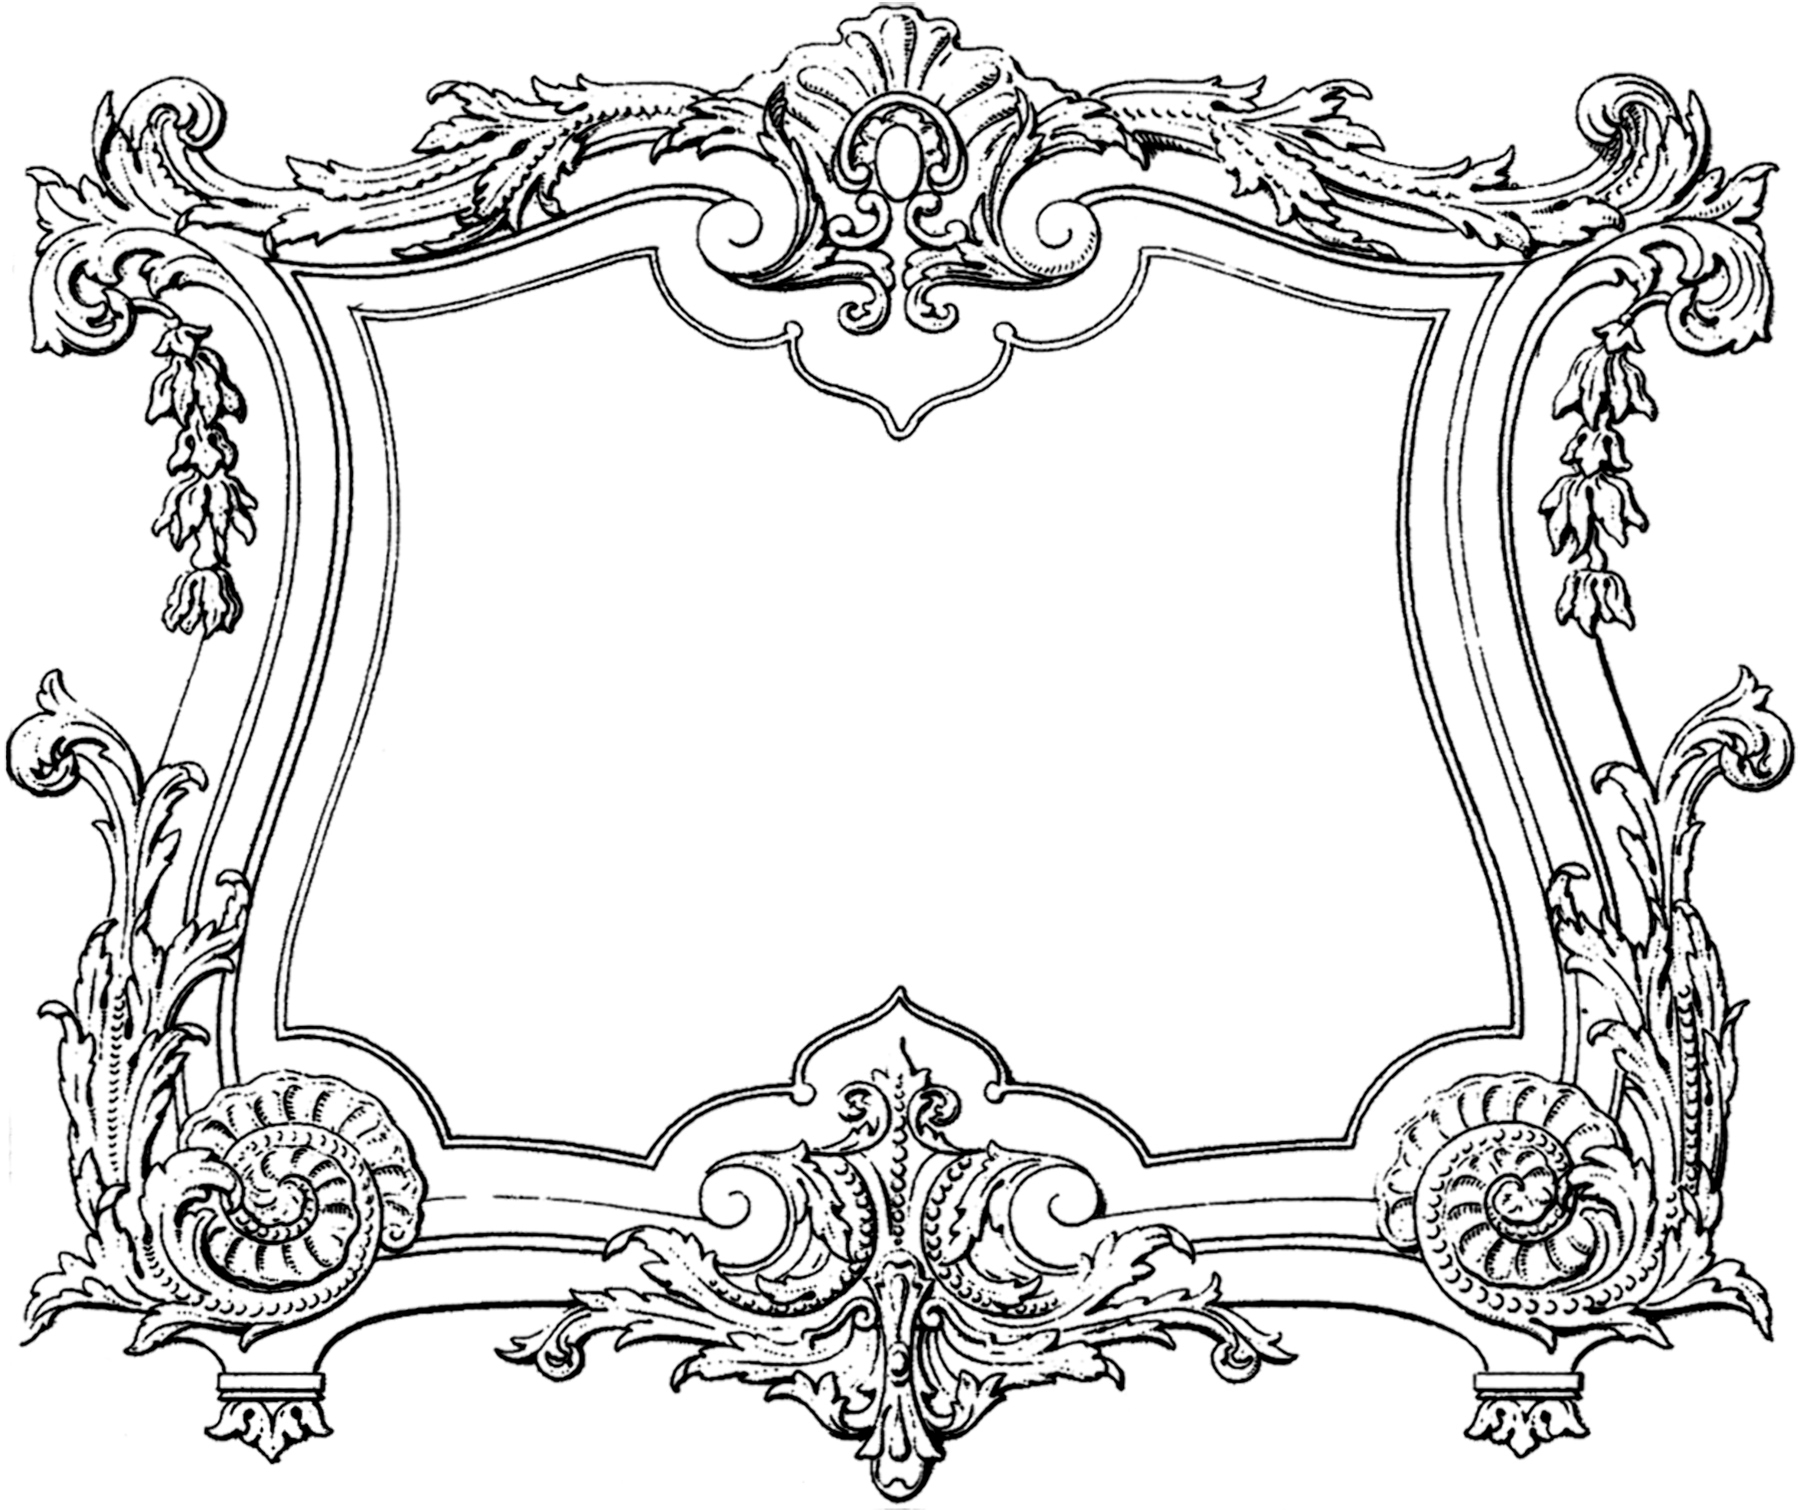 decorative french frame image - Decorative Frames